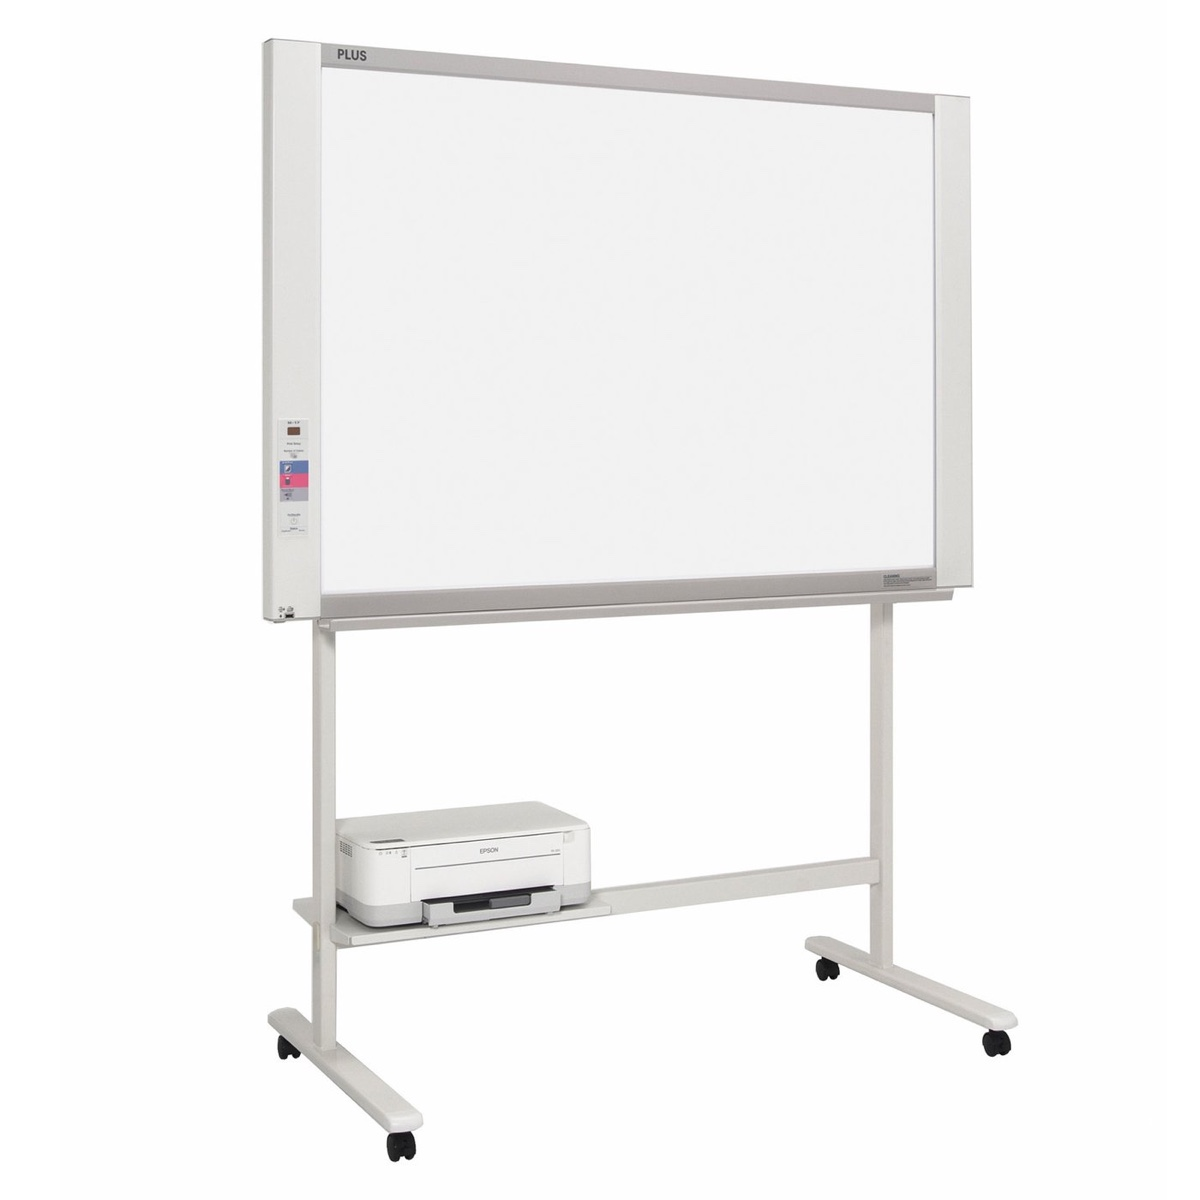 PLUS Whiteboards:  The PLUS Copyboard M-18S